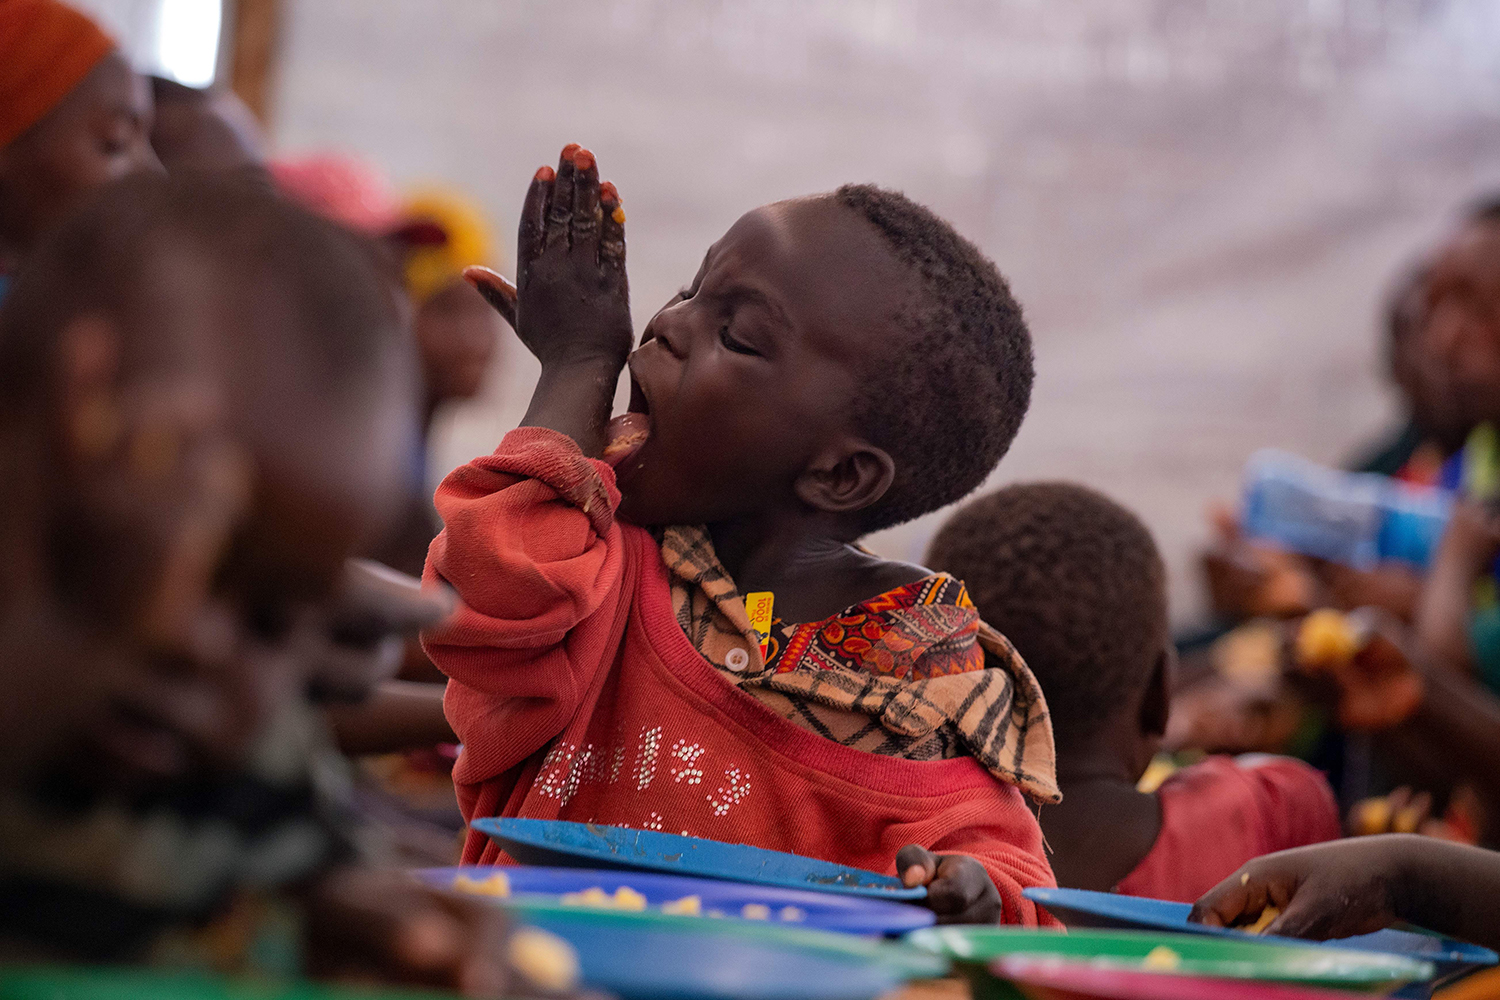 A young Burundian refugee licks his hand during a meal at the Nyabitara Transit site in Ruyigi, Burundi, on Oct. 3.  Nearly 600 Burundians who fled political violence in their home country to Tanzania were repatriated voluntarily, the U.N. refugee agency said, after the Tanzanian government vowed that from Oct. 1 it would start repatriating all Burundians, willing or not. TCHANDROU NITANGA/AFP via Getty Images